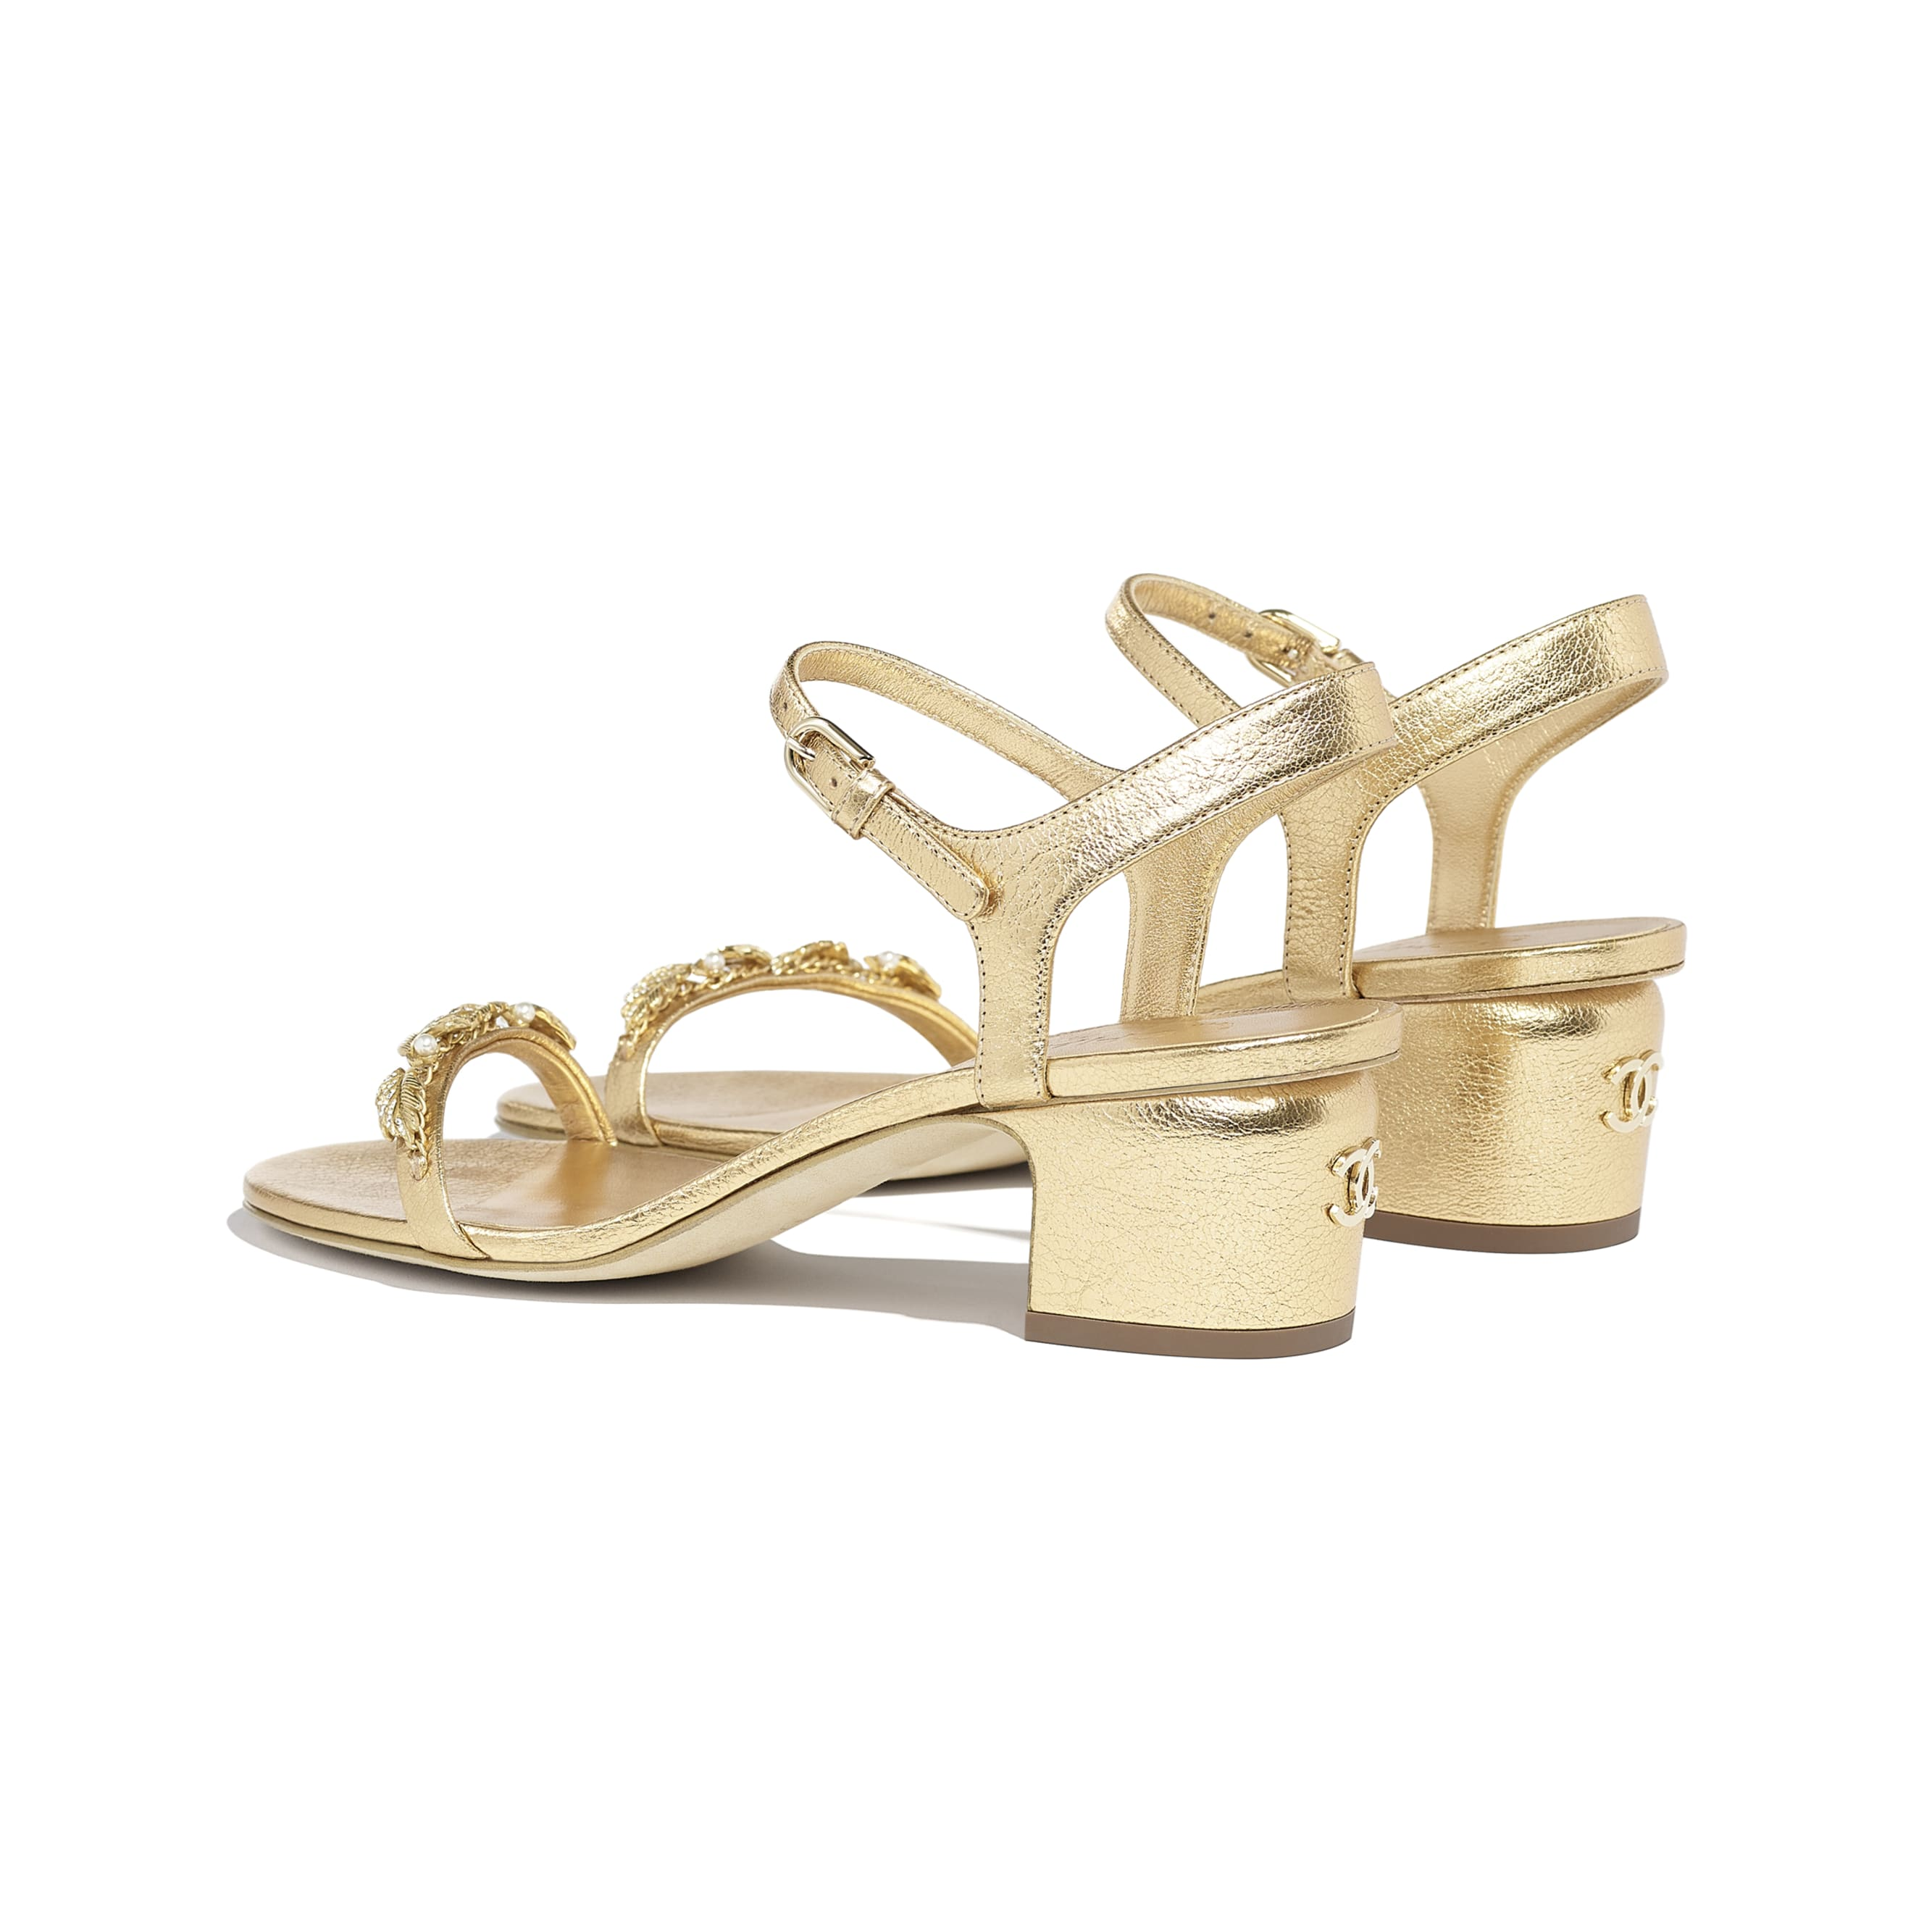 Sandals - Gold - Laminated Goatskin & Jewelry  - CHANEL - Other view - see standard sized version